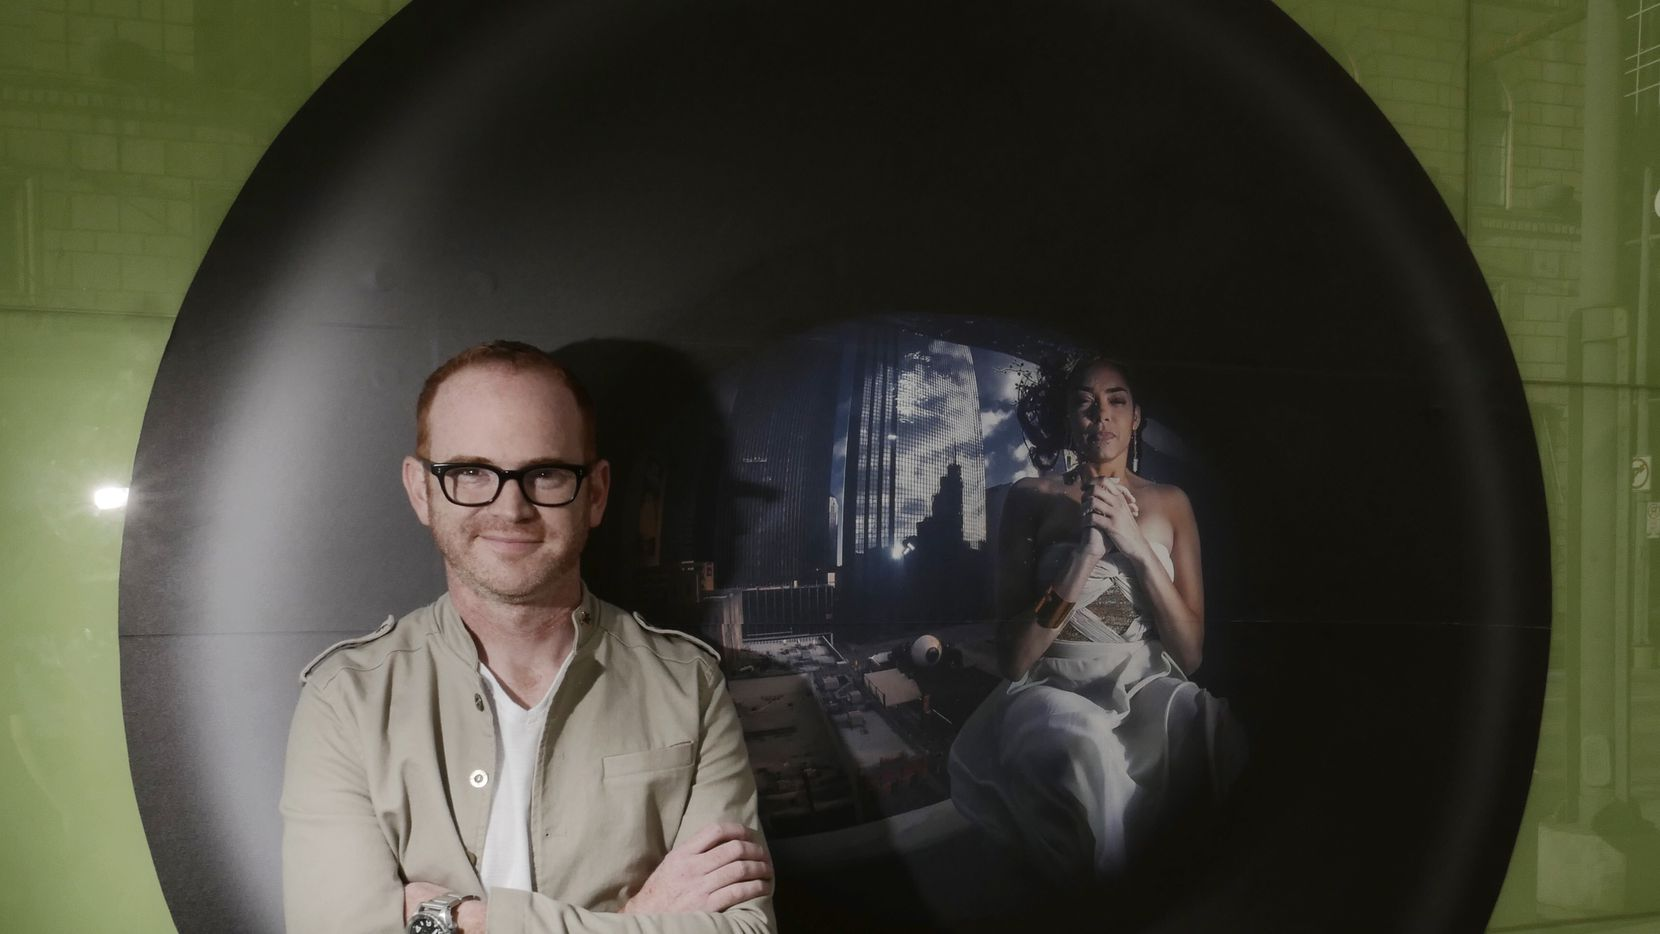 Jeremy McKane, a Dallas-based underwater fashion photographer, with his  Earth Day 2015 installation at Main Street Garden. The photo was printed on a weather-proof adhesive material and mounted on the Main Street side of the  City Park Cafe. The photo will be on display through May 22.